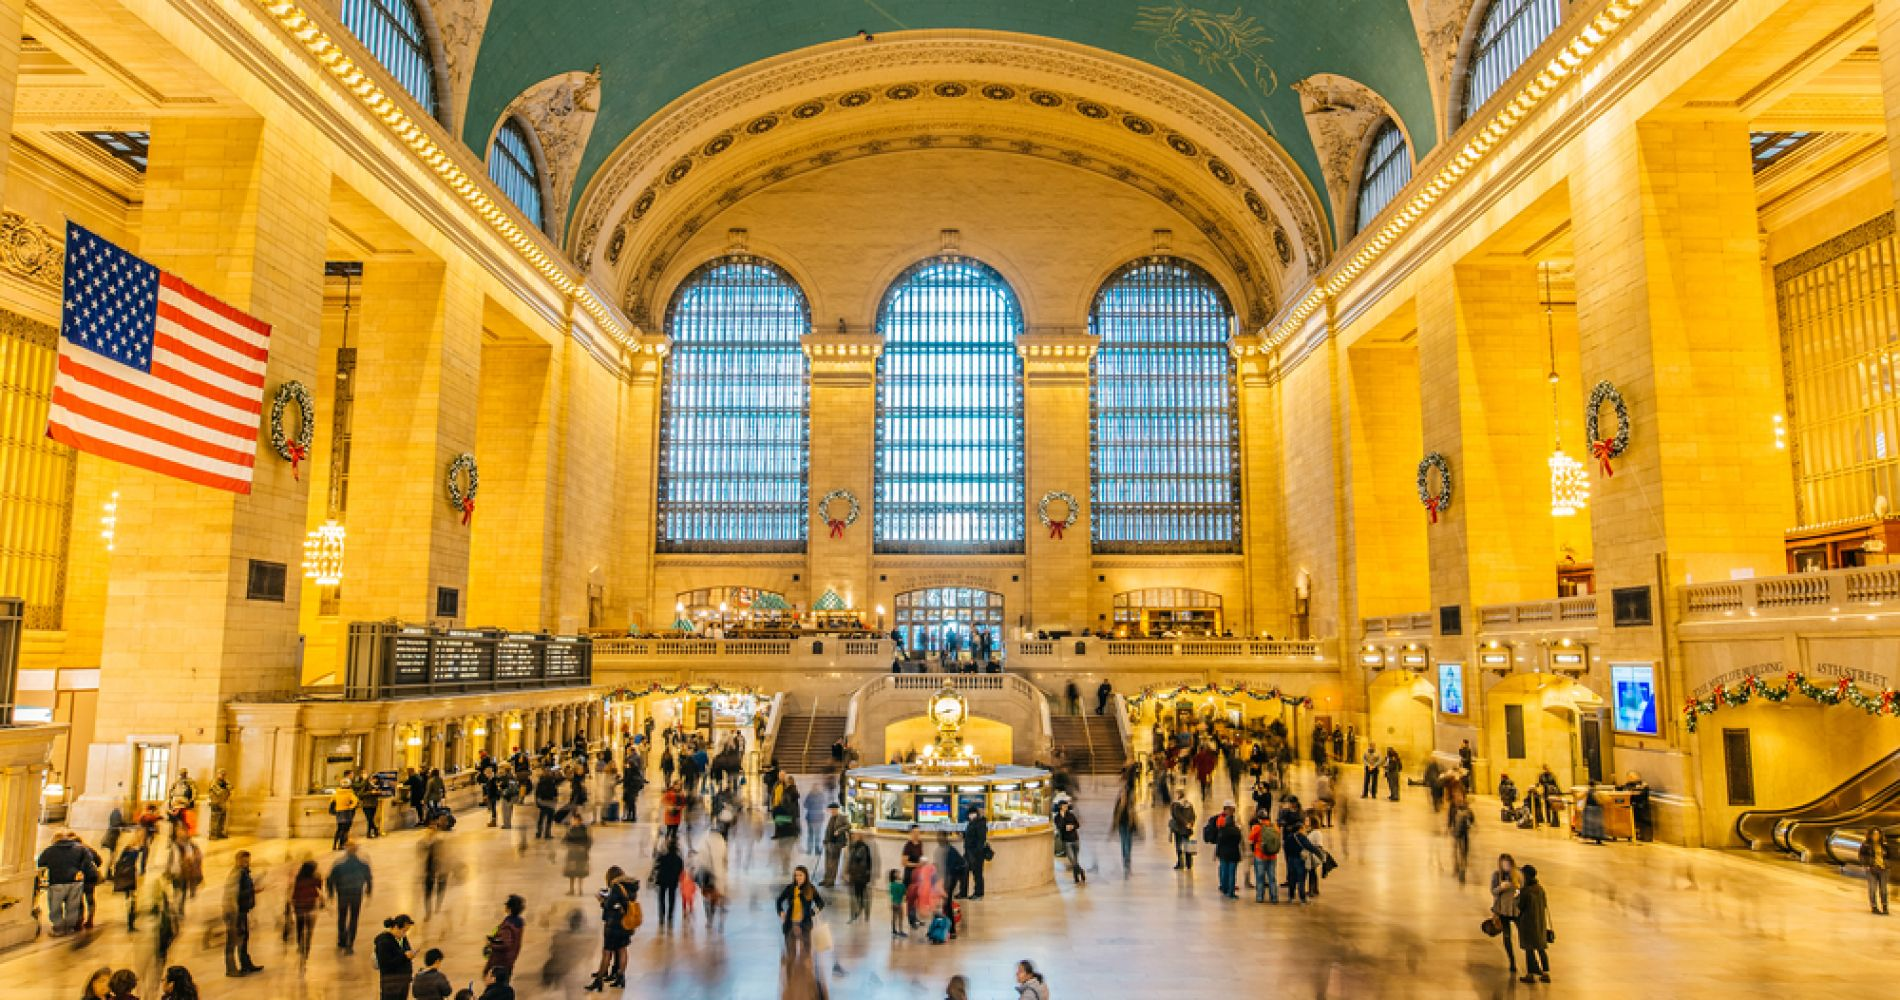 Explore the magnificent Grand Central Station in New York